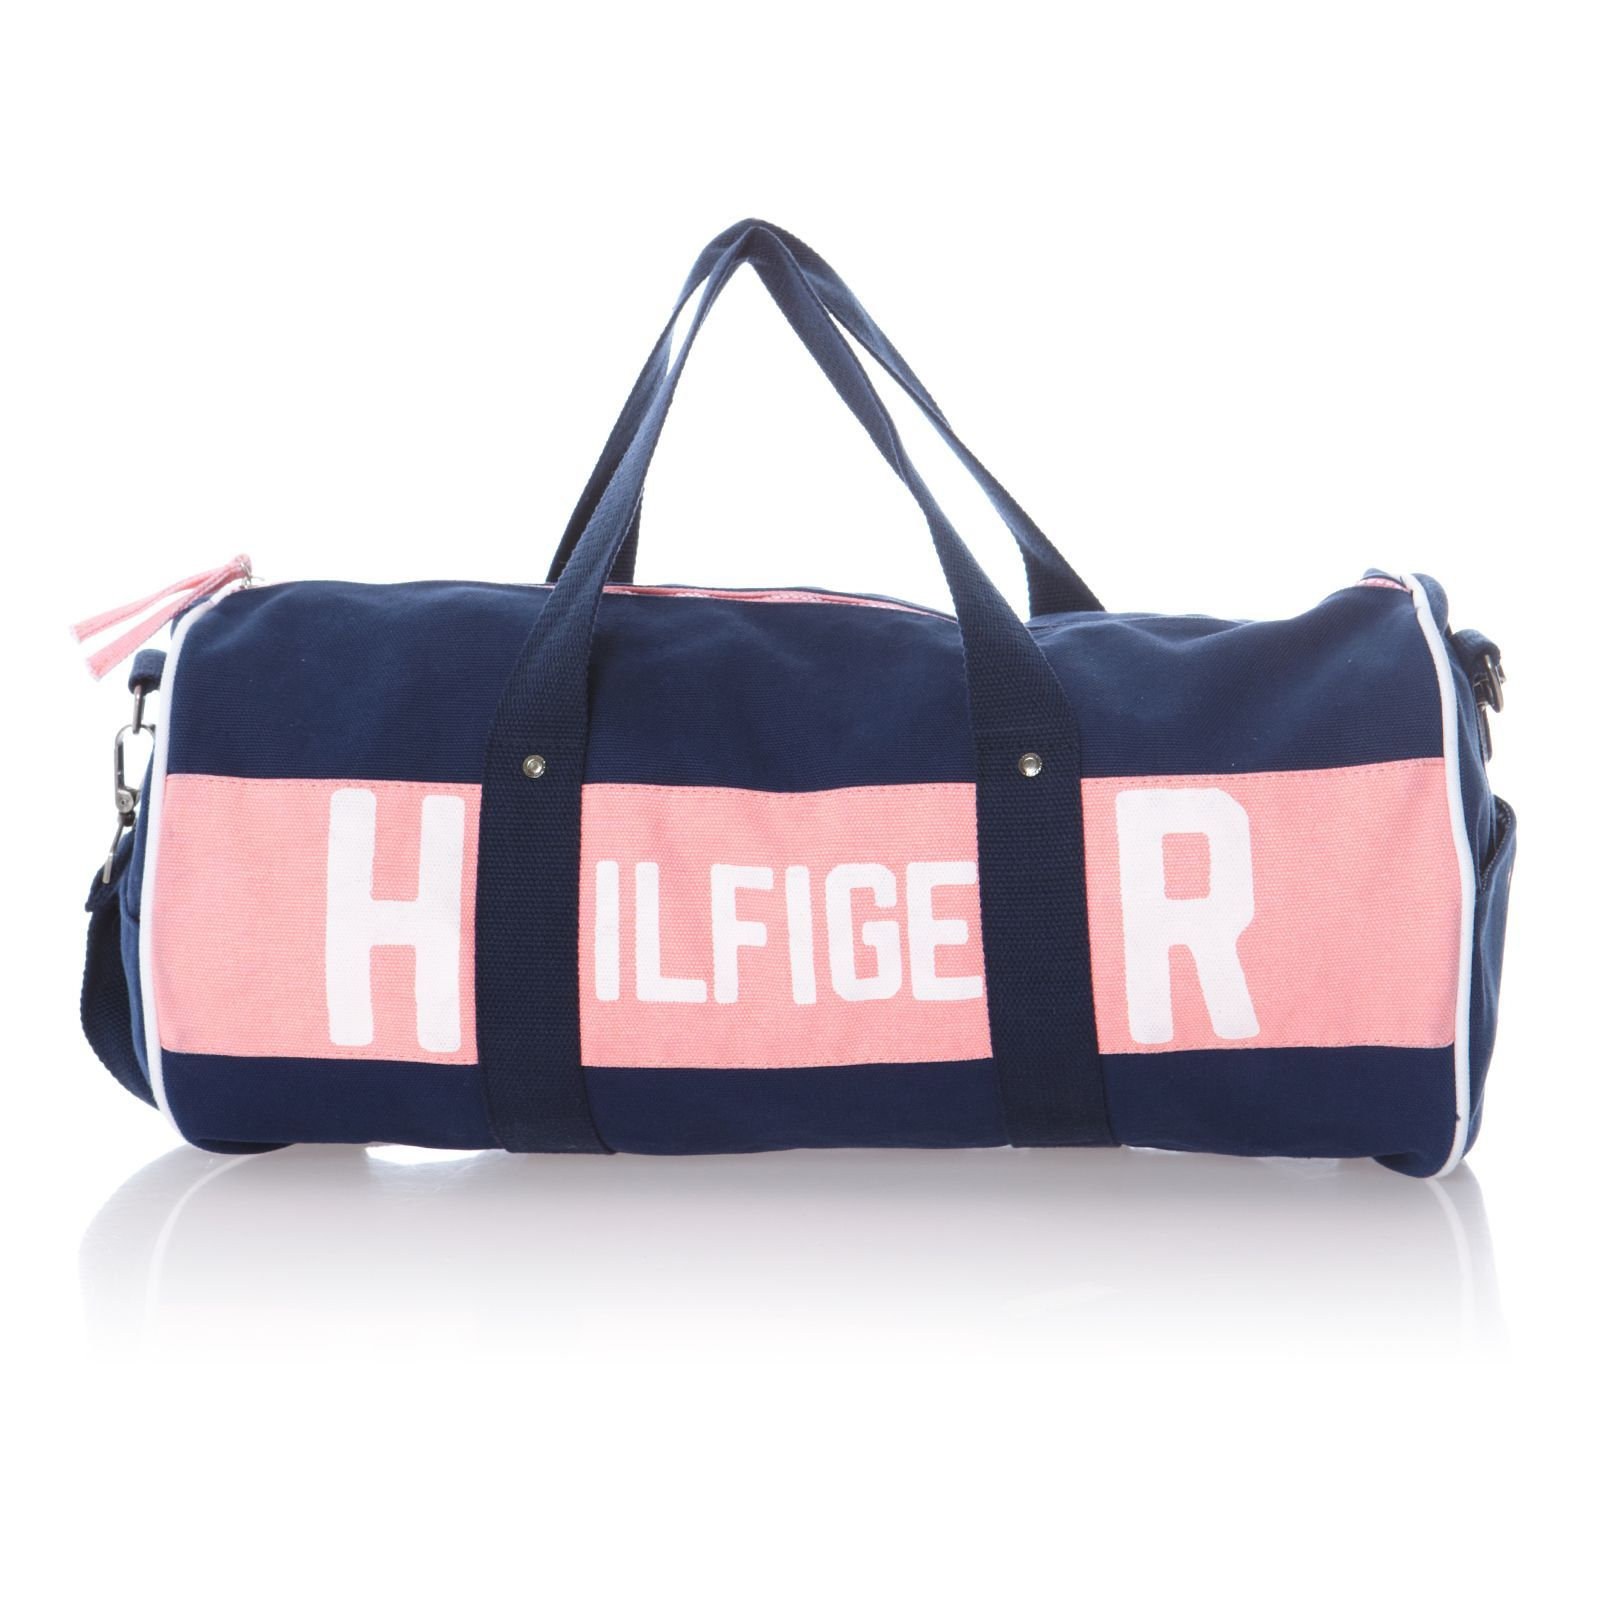 tommy hilfiger sac de sport bleu marine et rose bleu. Black Bedroom Furniture Sets. Home Design Ideas